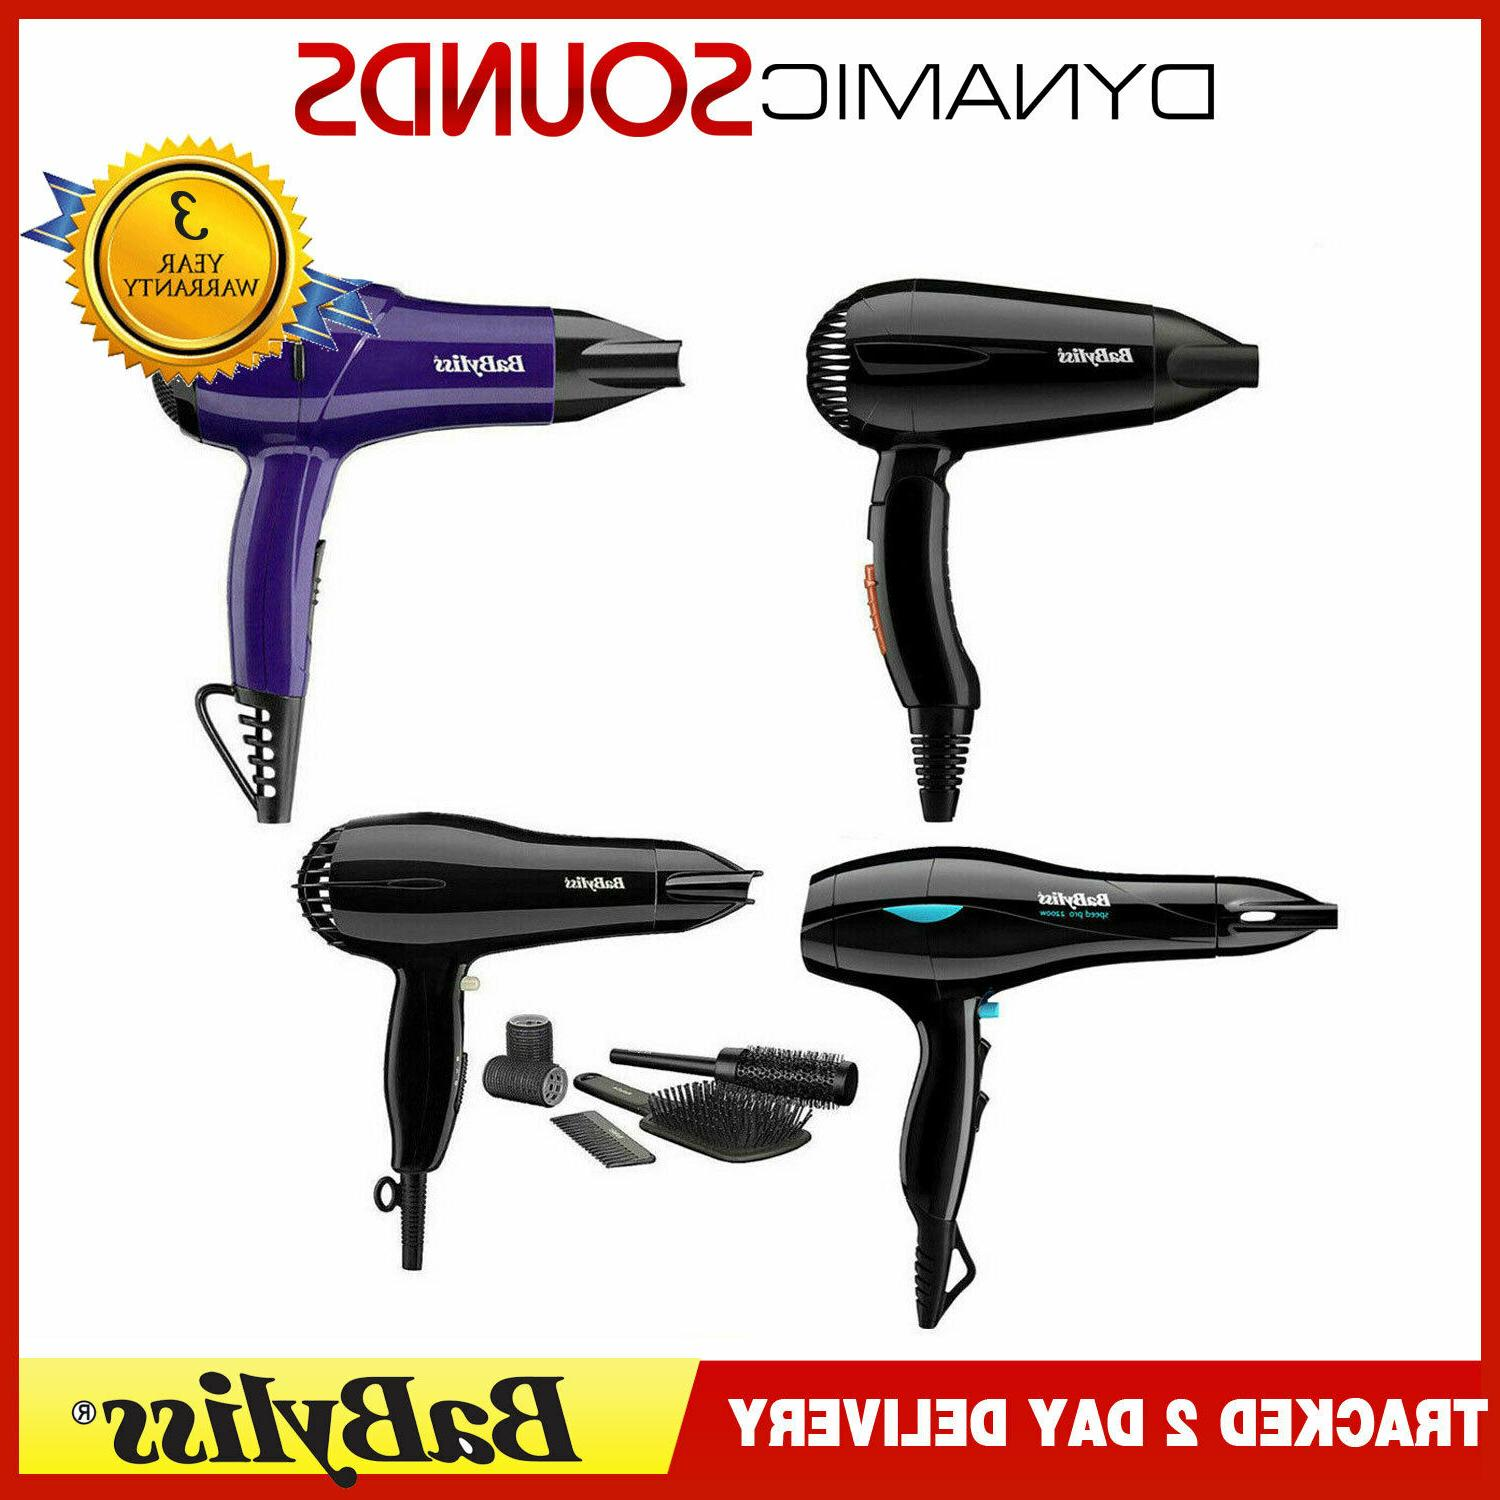 professional lightweight and compact travel hair dryer